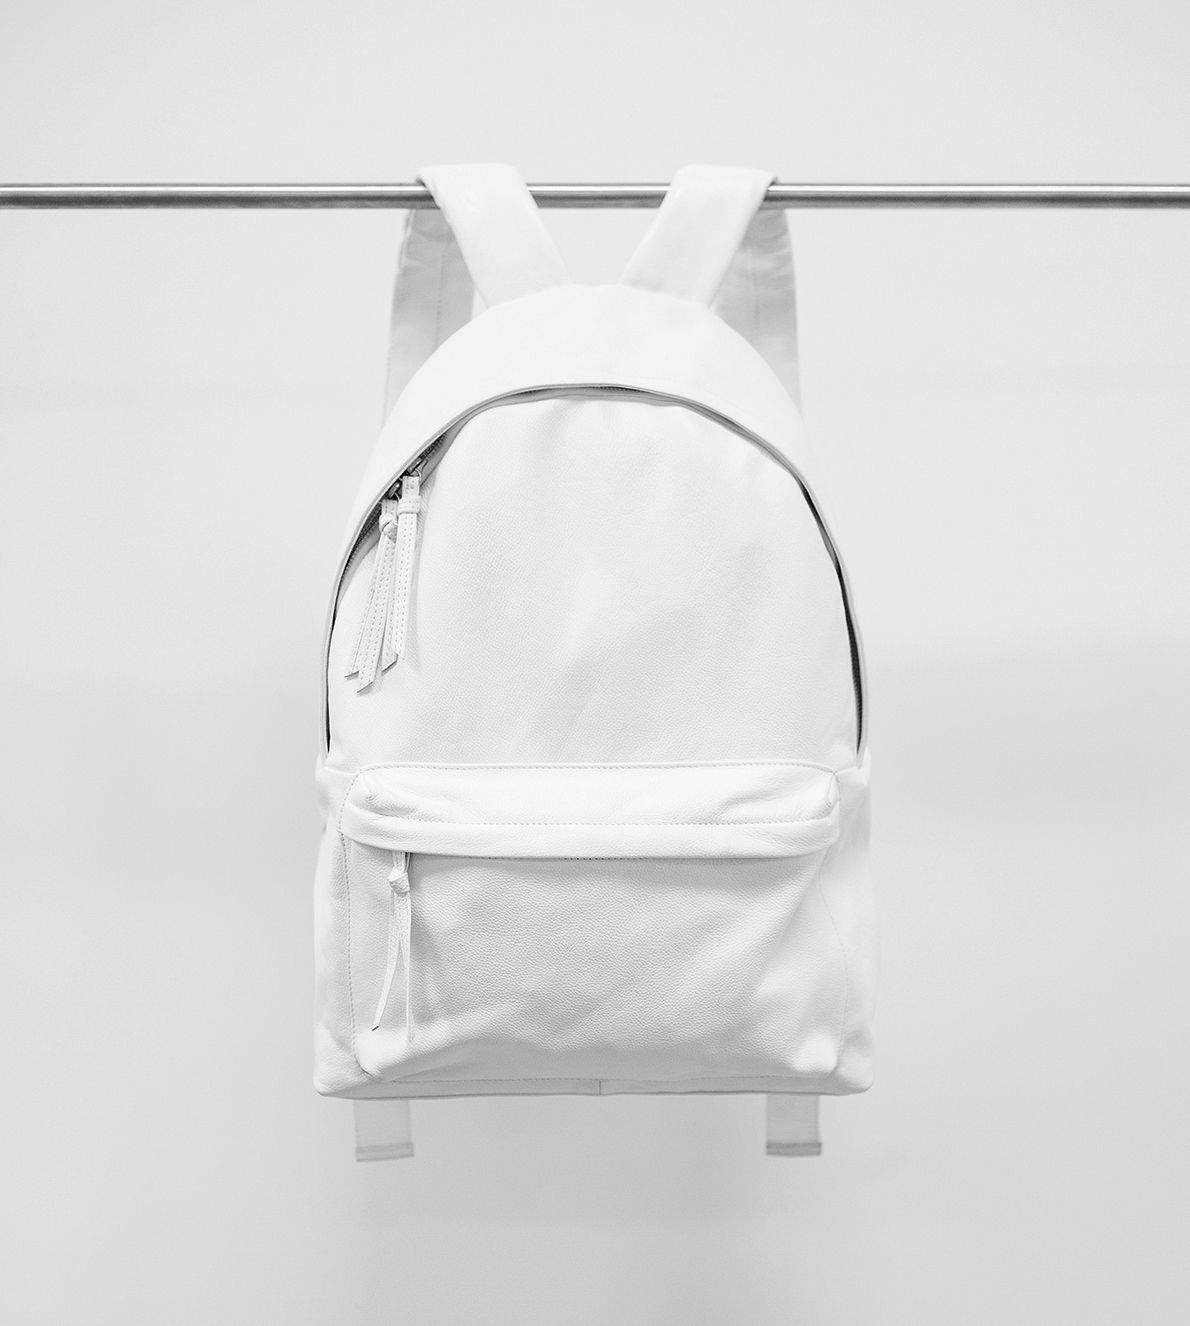 Pb 0110 Matte White Small Leather Backpack found on Polyvore | Top ...